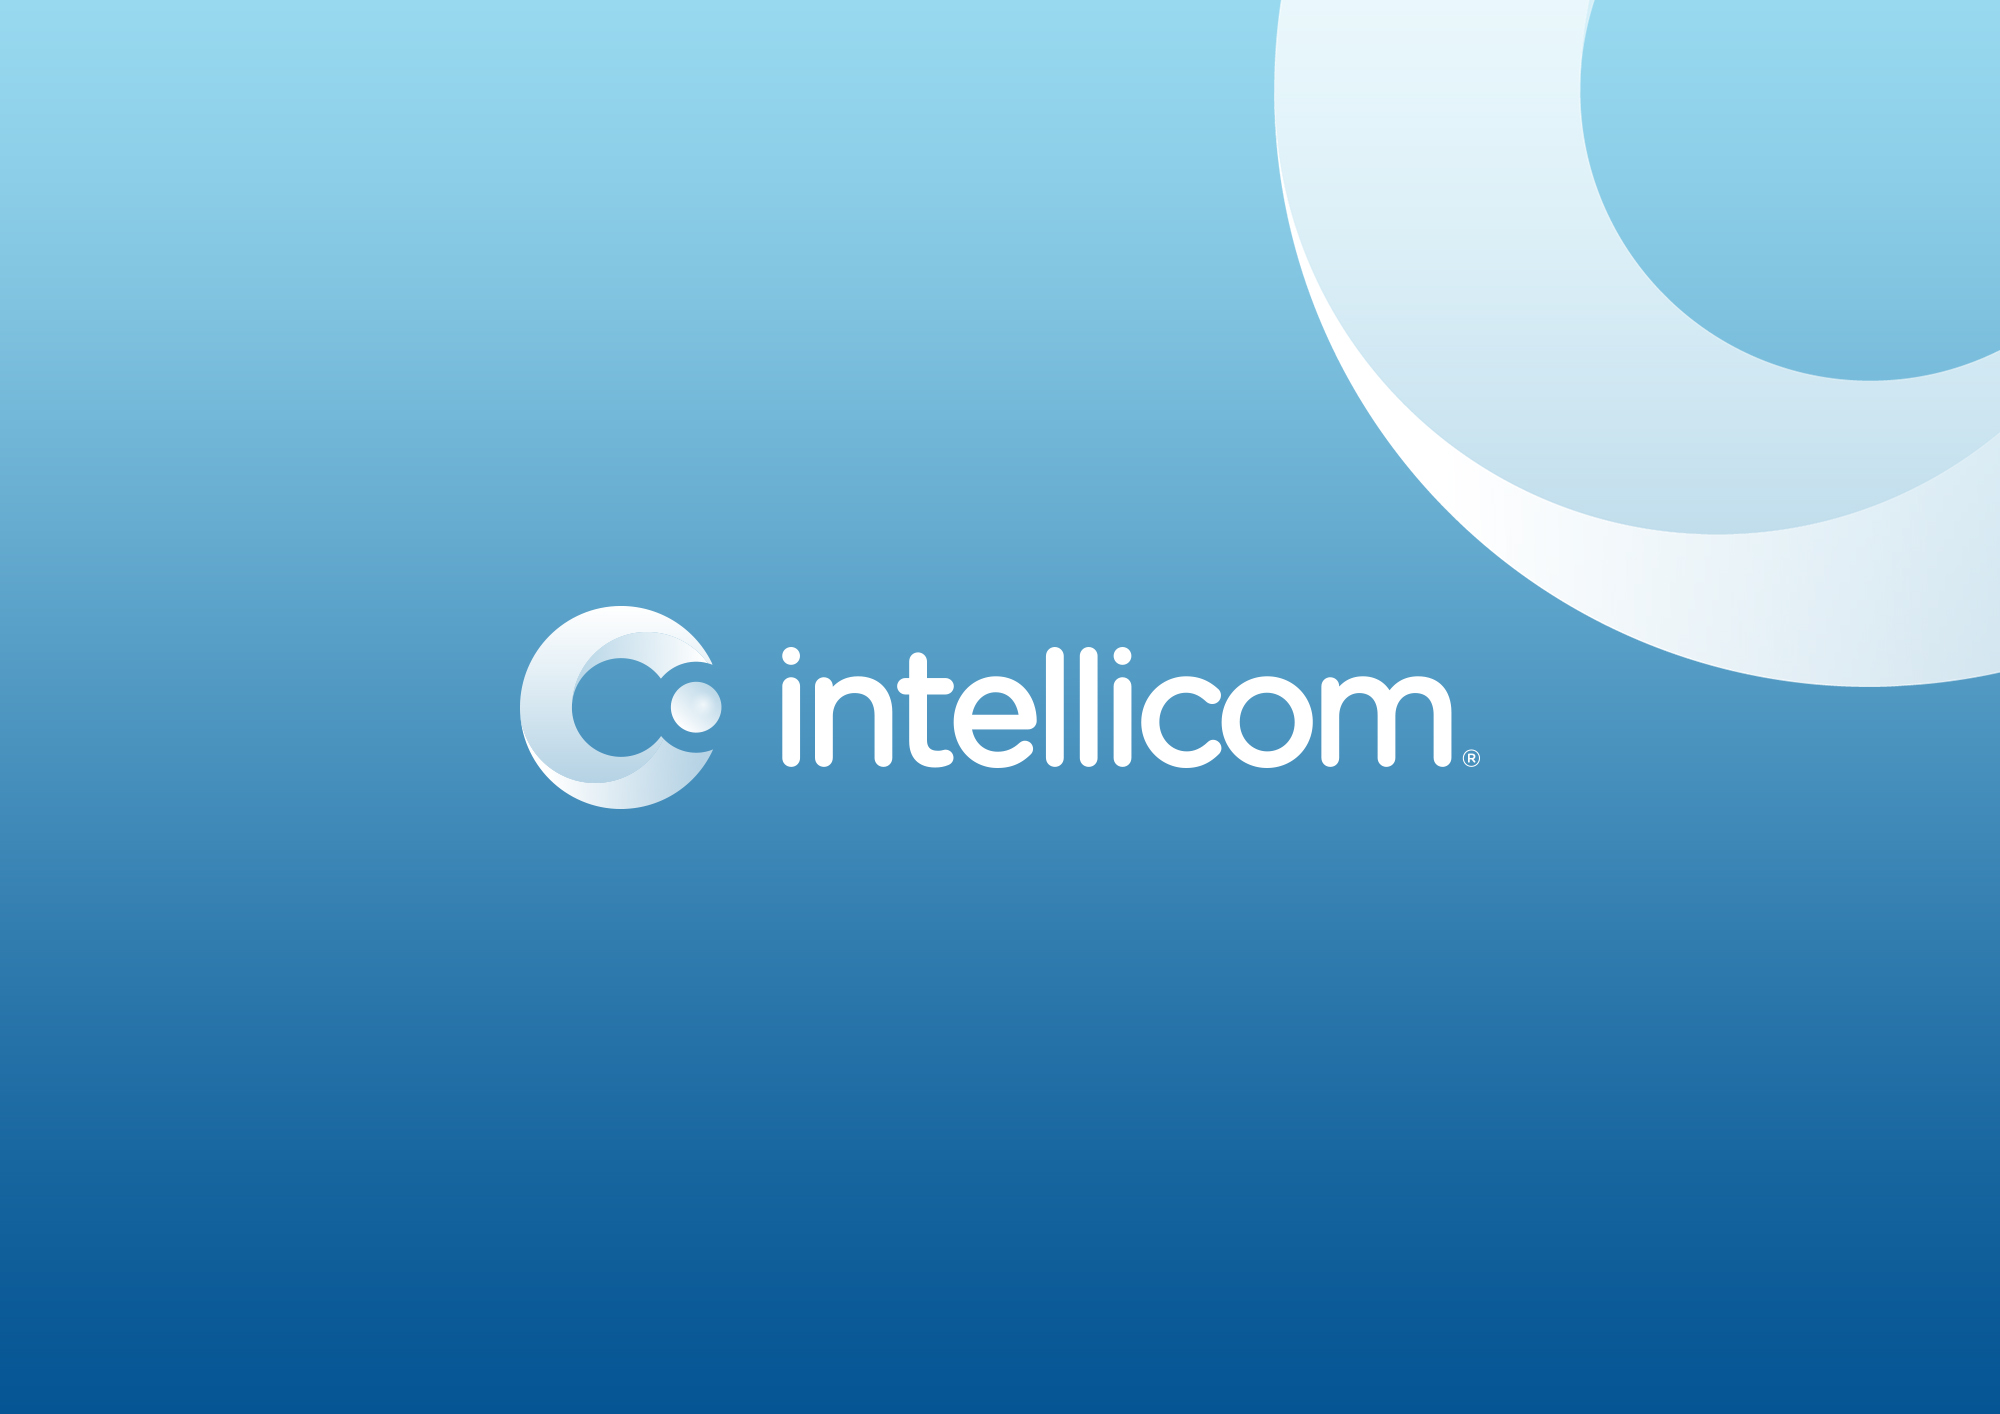 Cover image: Intellicom